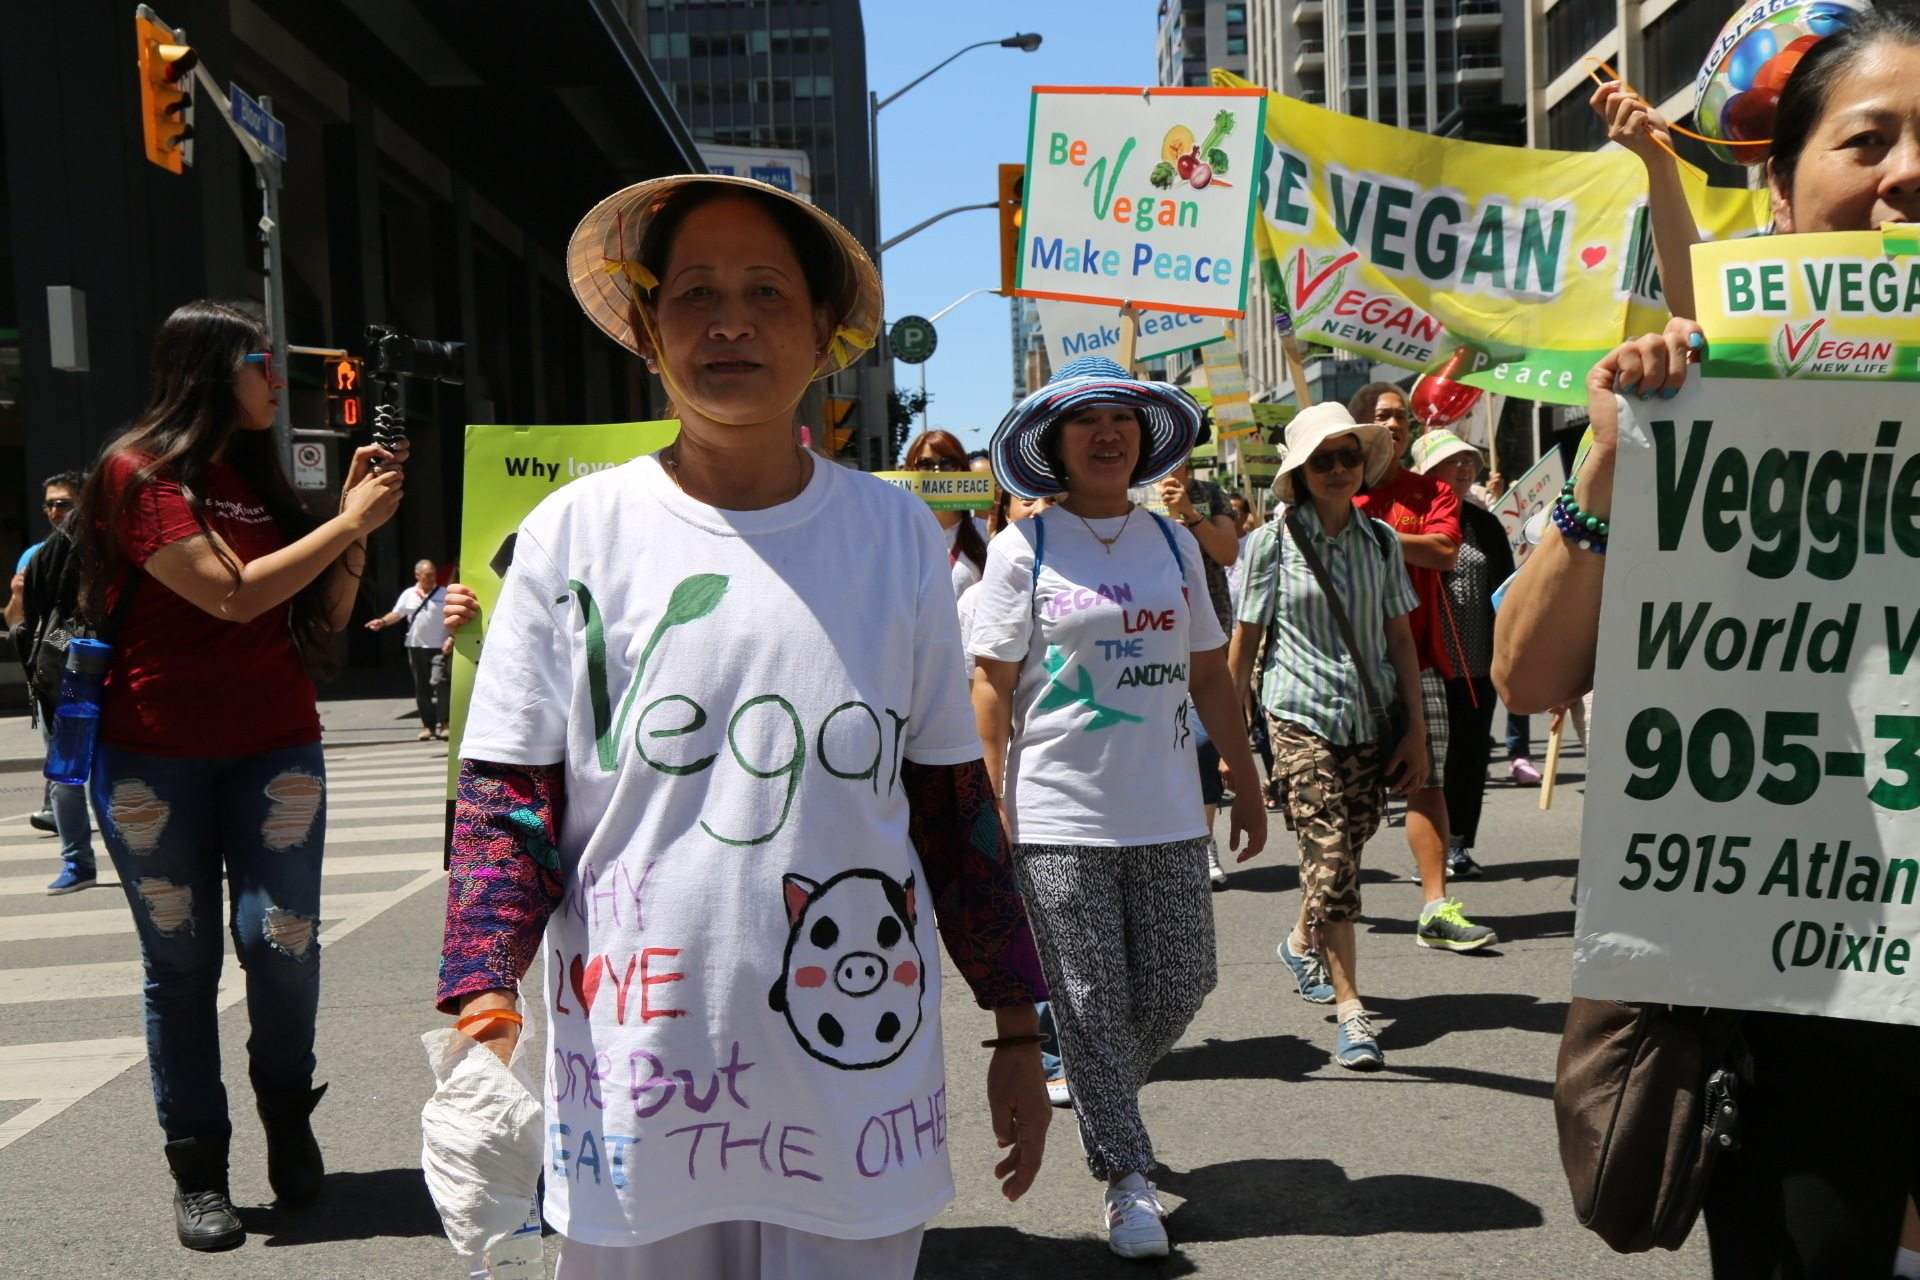 """Support veganism and love animals"" says Nga Ma marching with the Supreme Master Ching Hai Meditation Association."